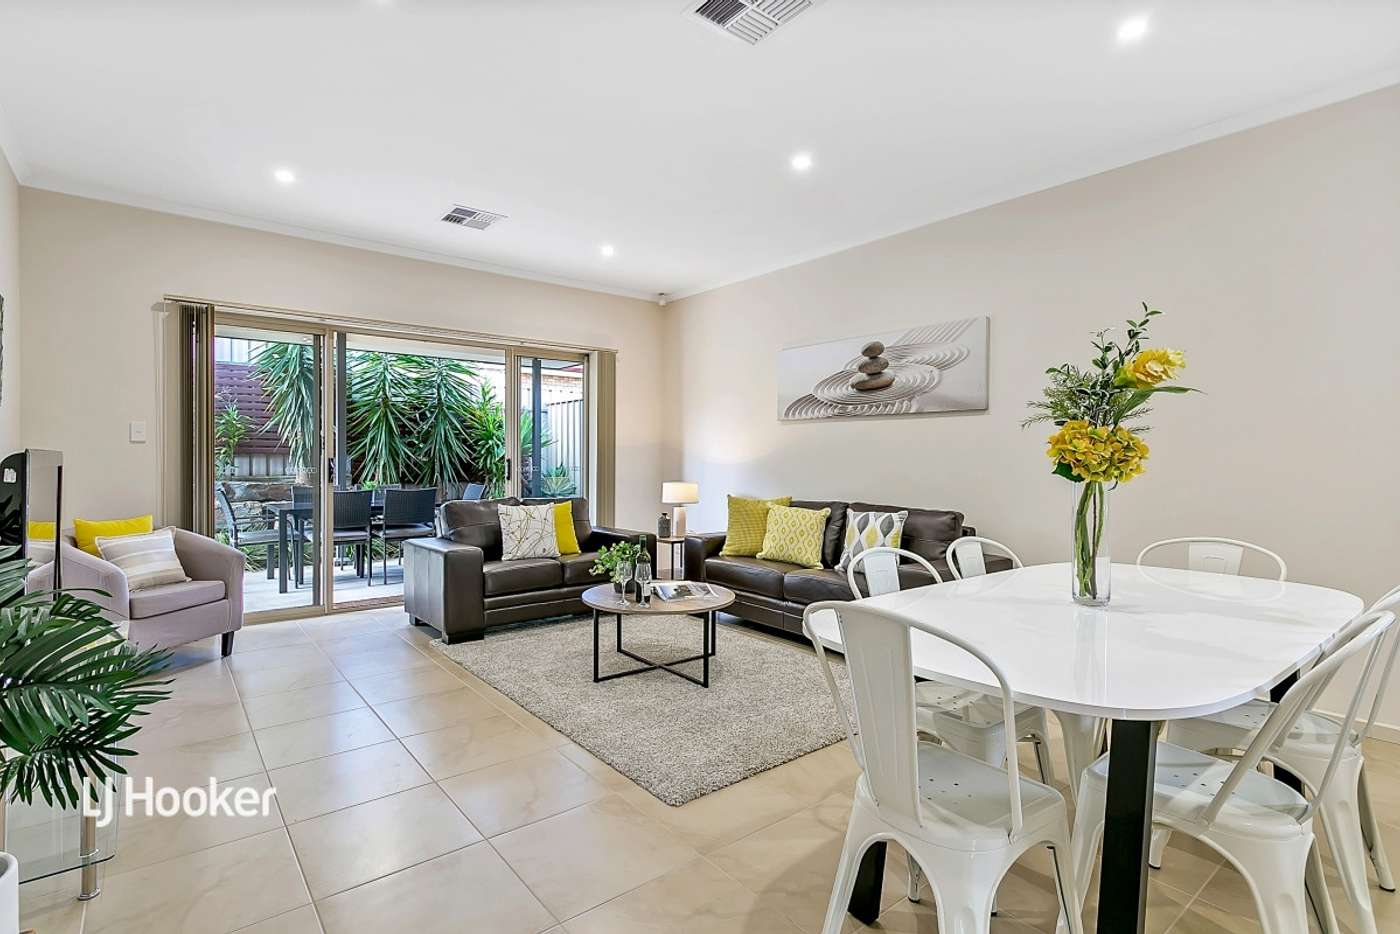 Fifth view of Homely house listing, 2/52 Valley Road, Hope Valley SA 5090